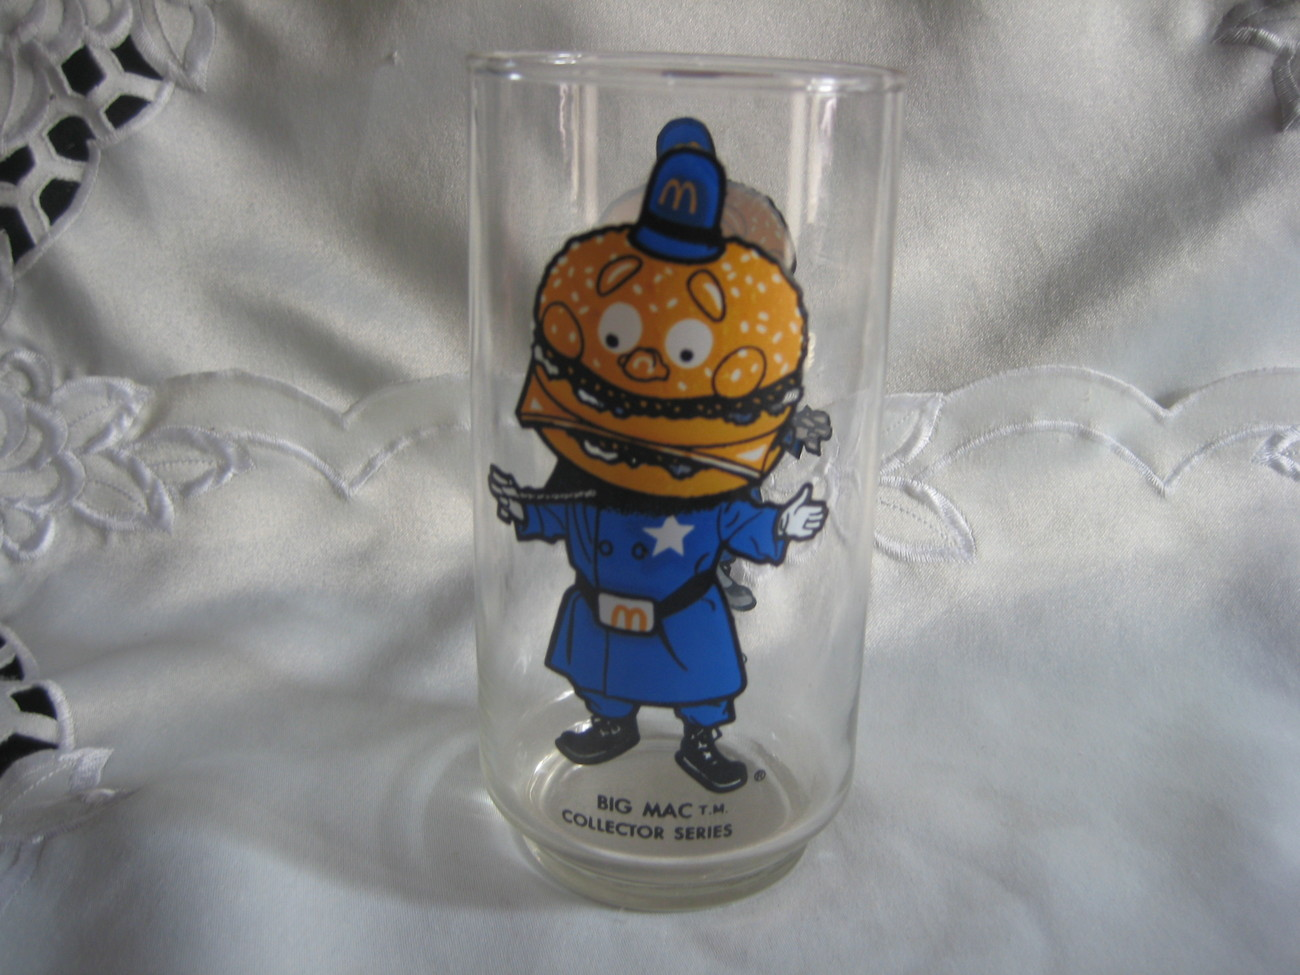 Big Mac Collectors series glass